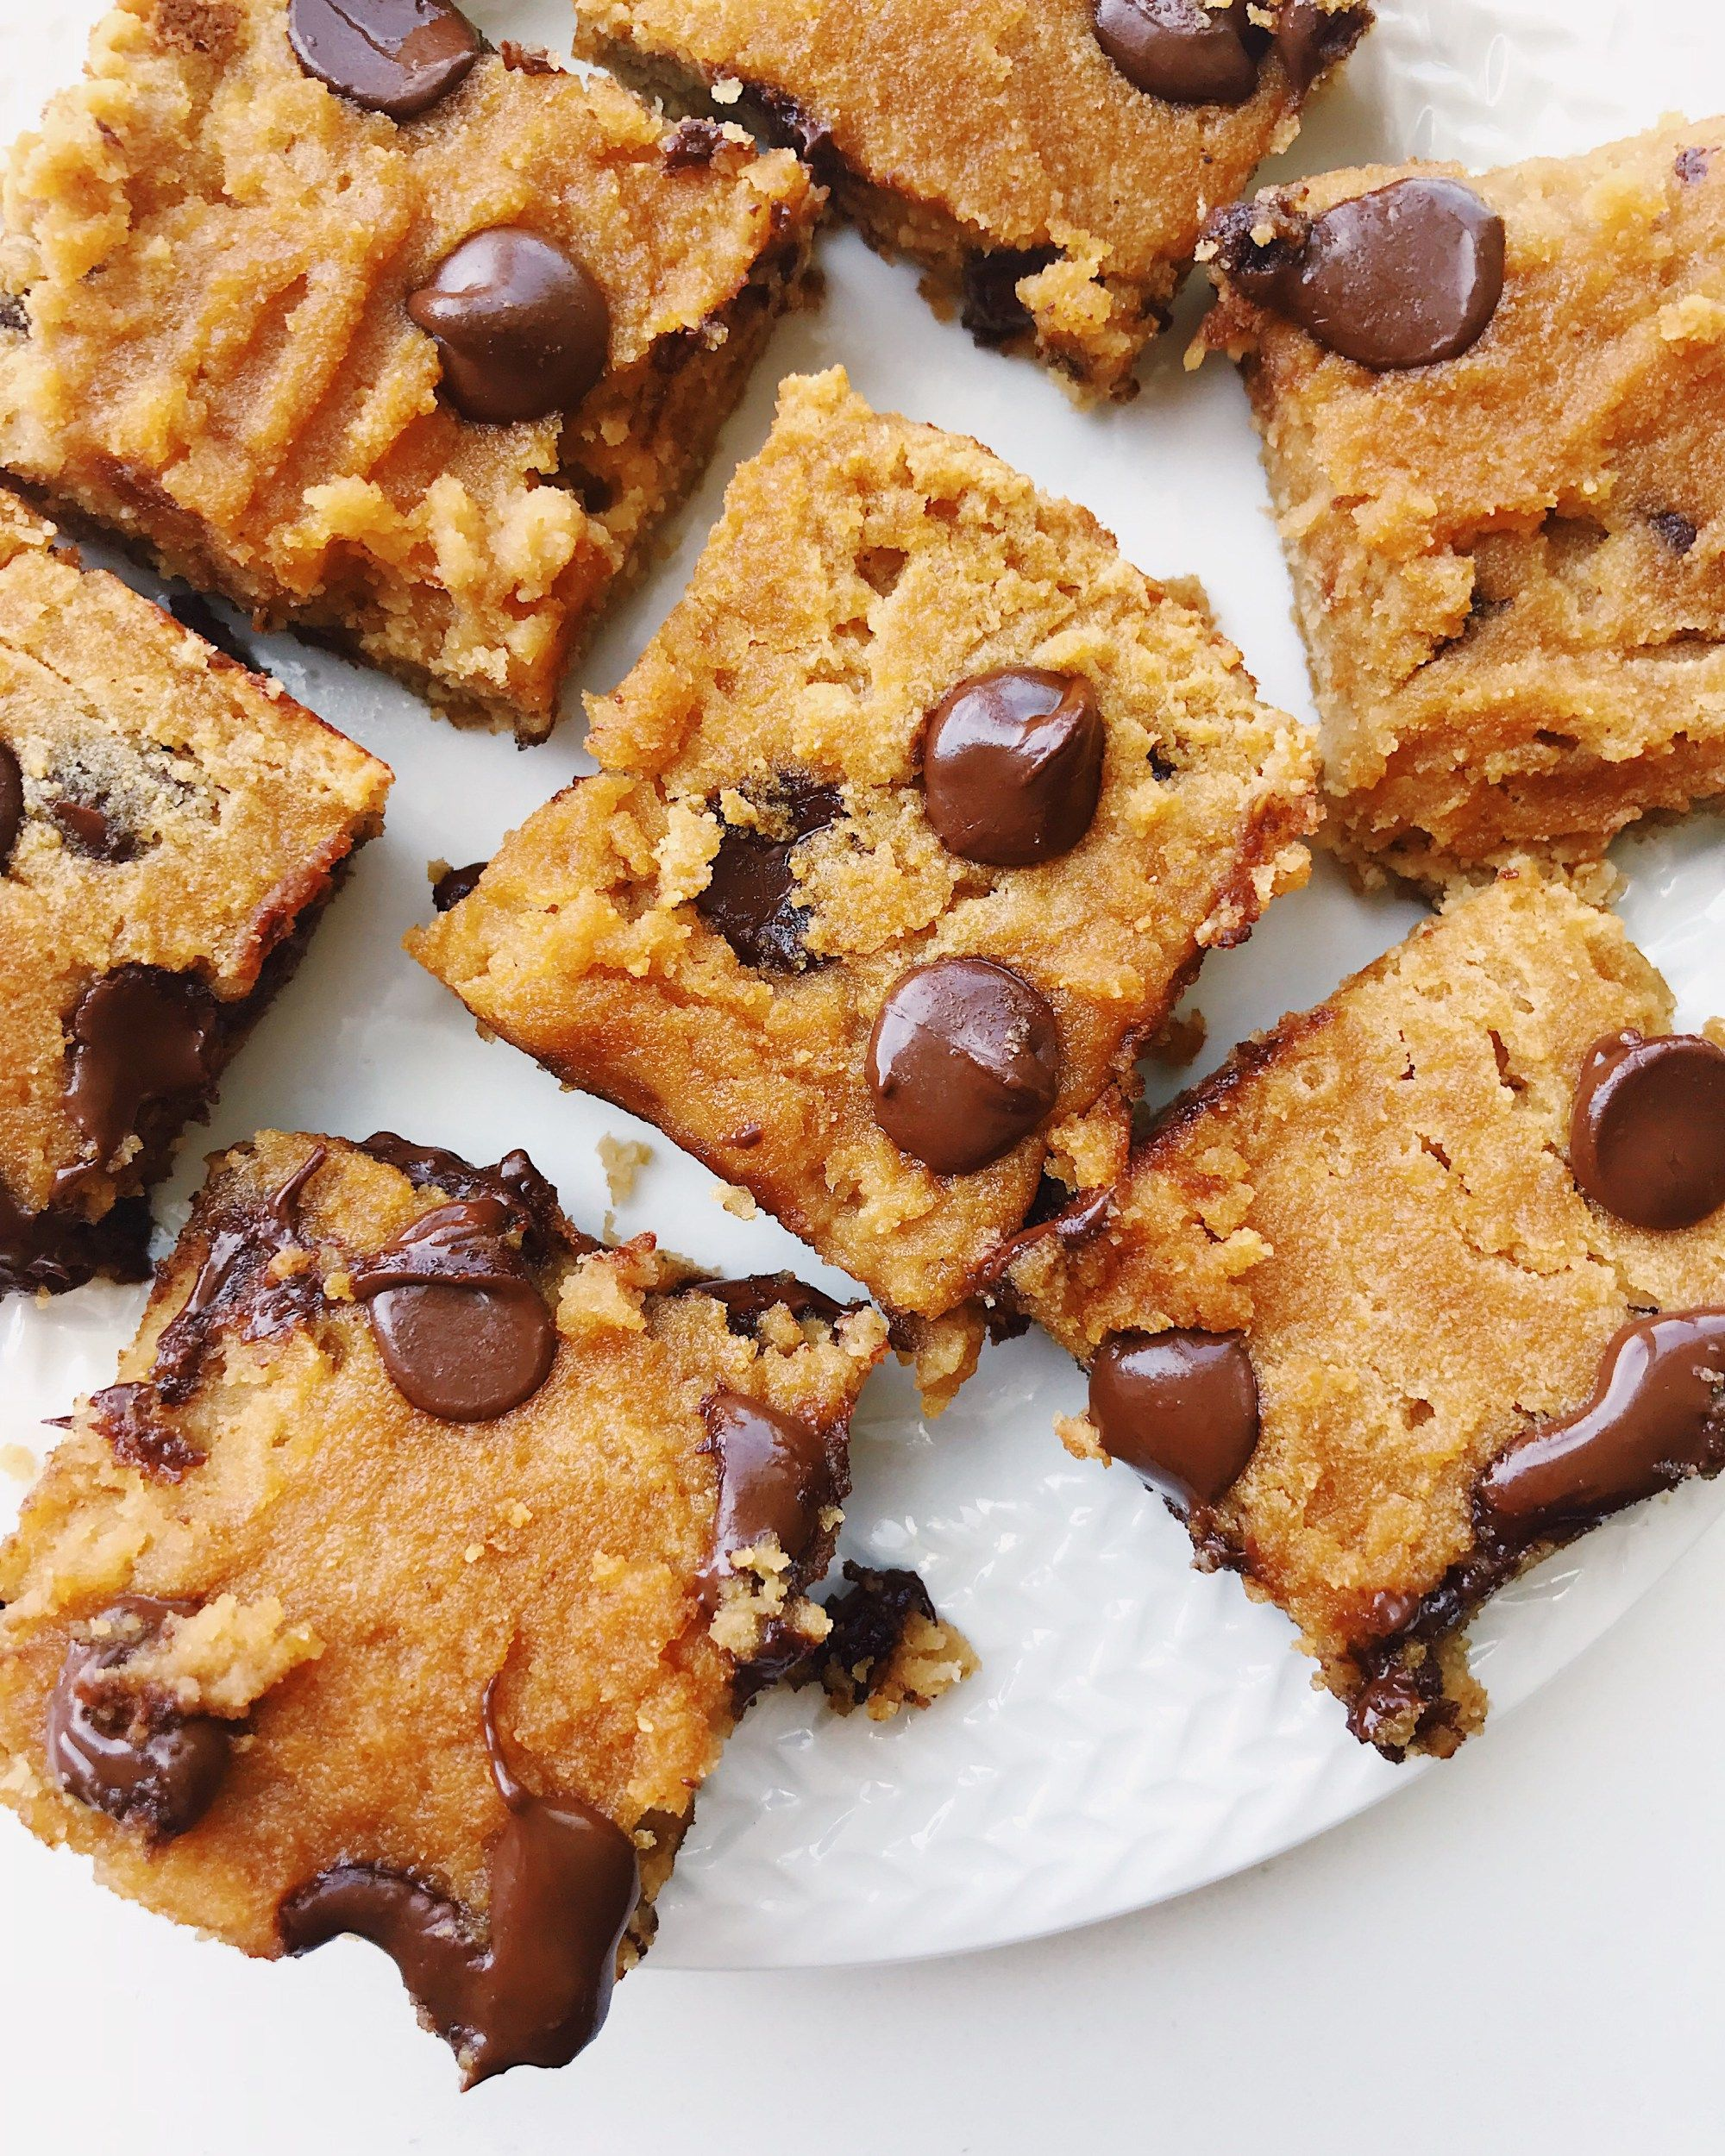 Coconut Flour Chocolate Chip Bars Gluten Free Dairy Free